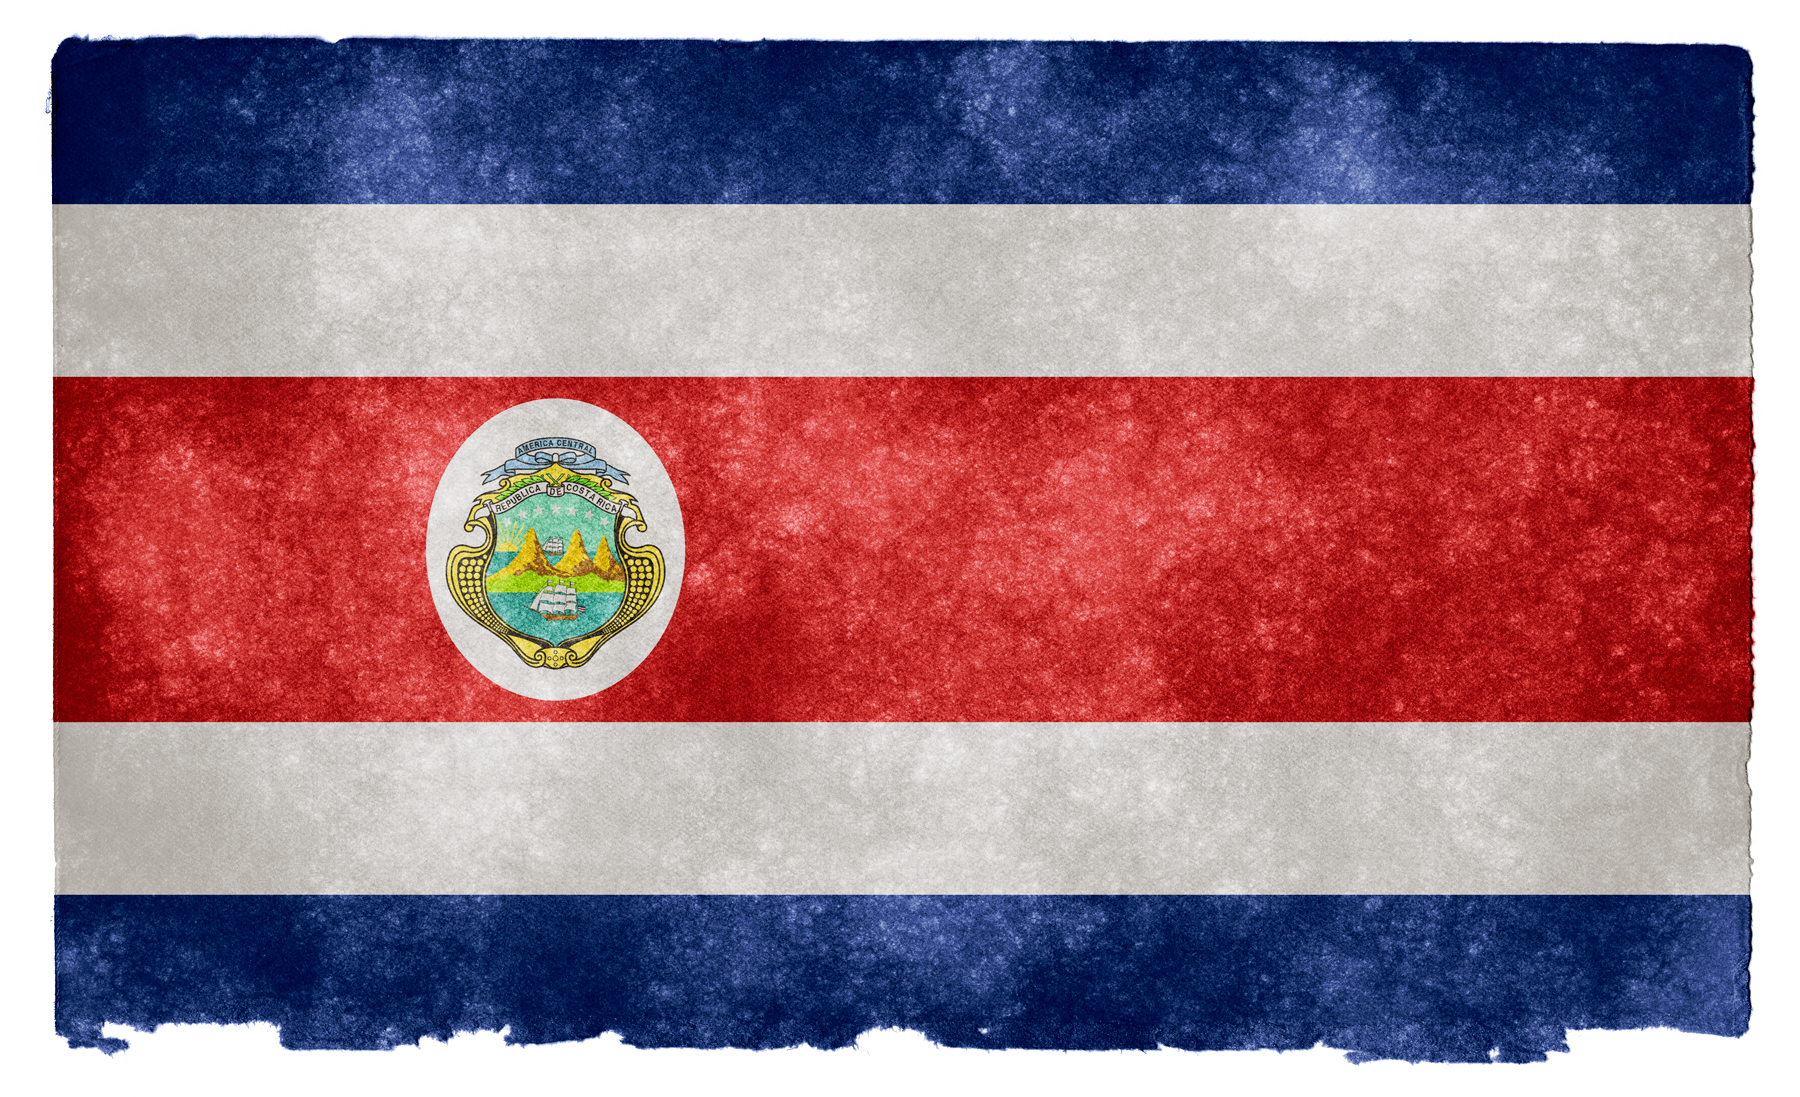 Costa Rica Grunge Flag HD Wallpaper